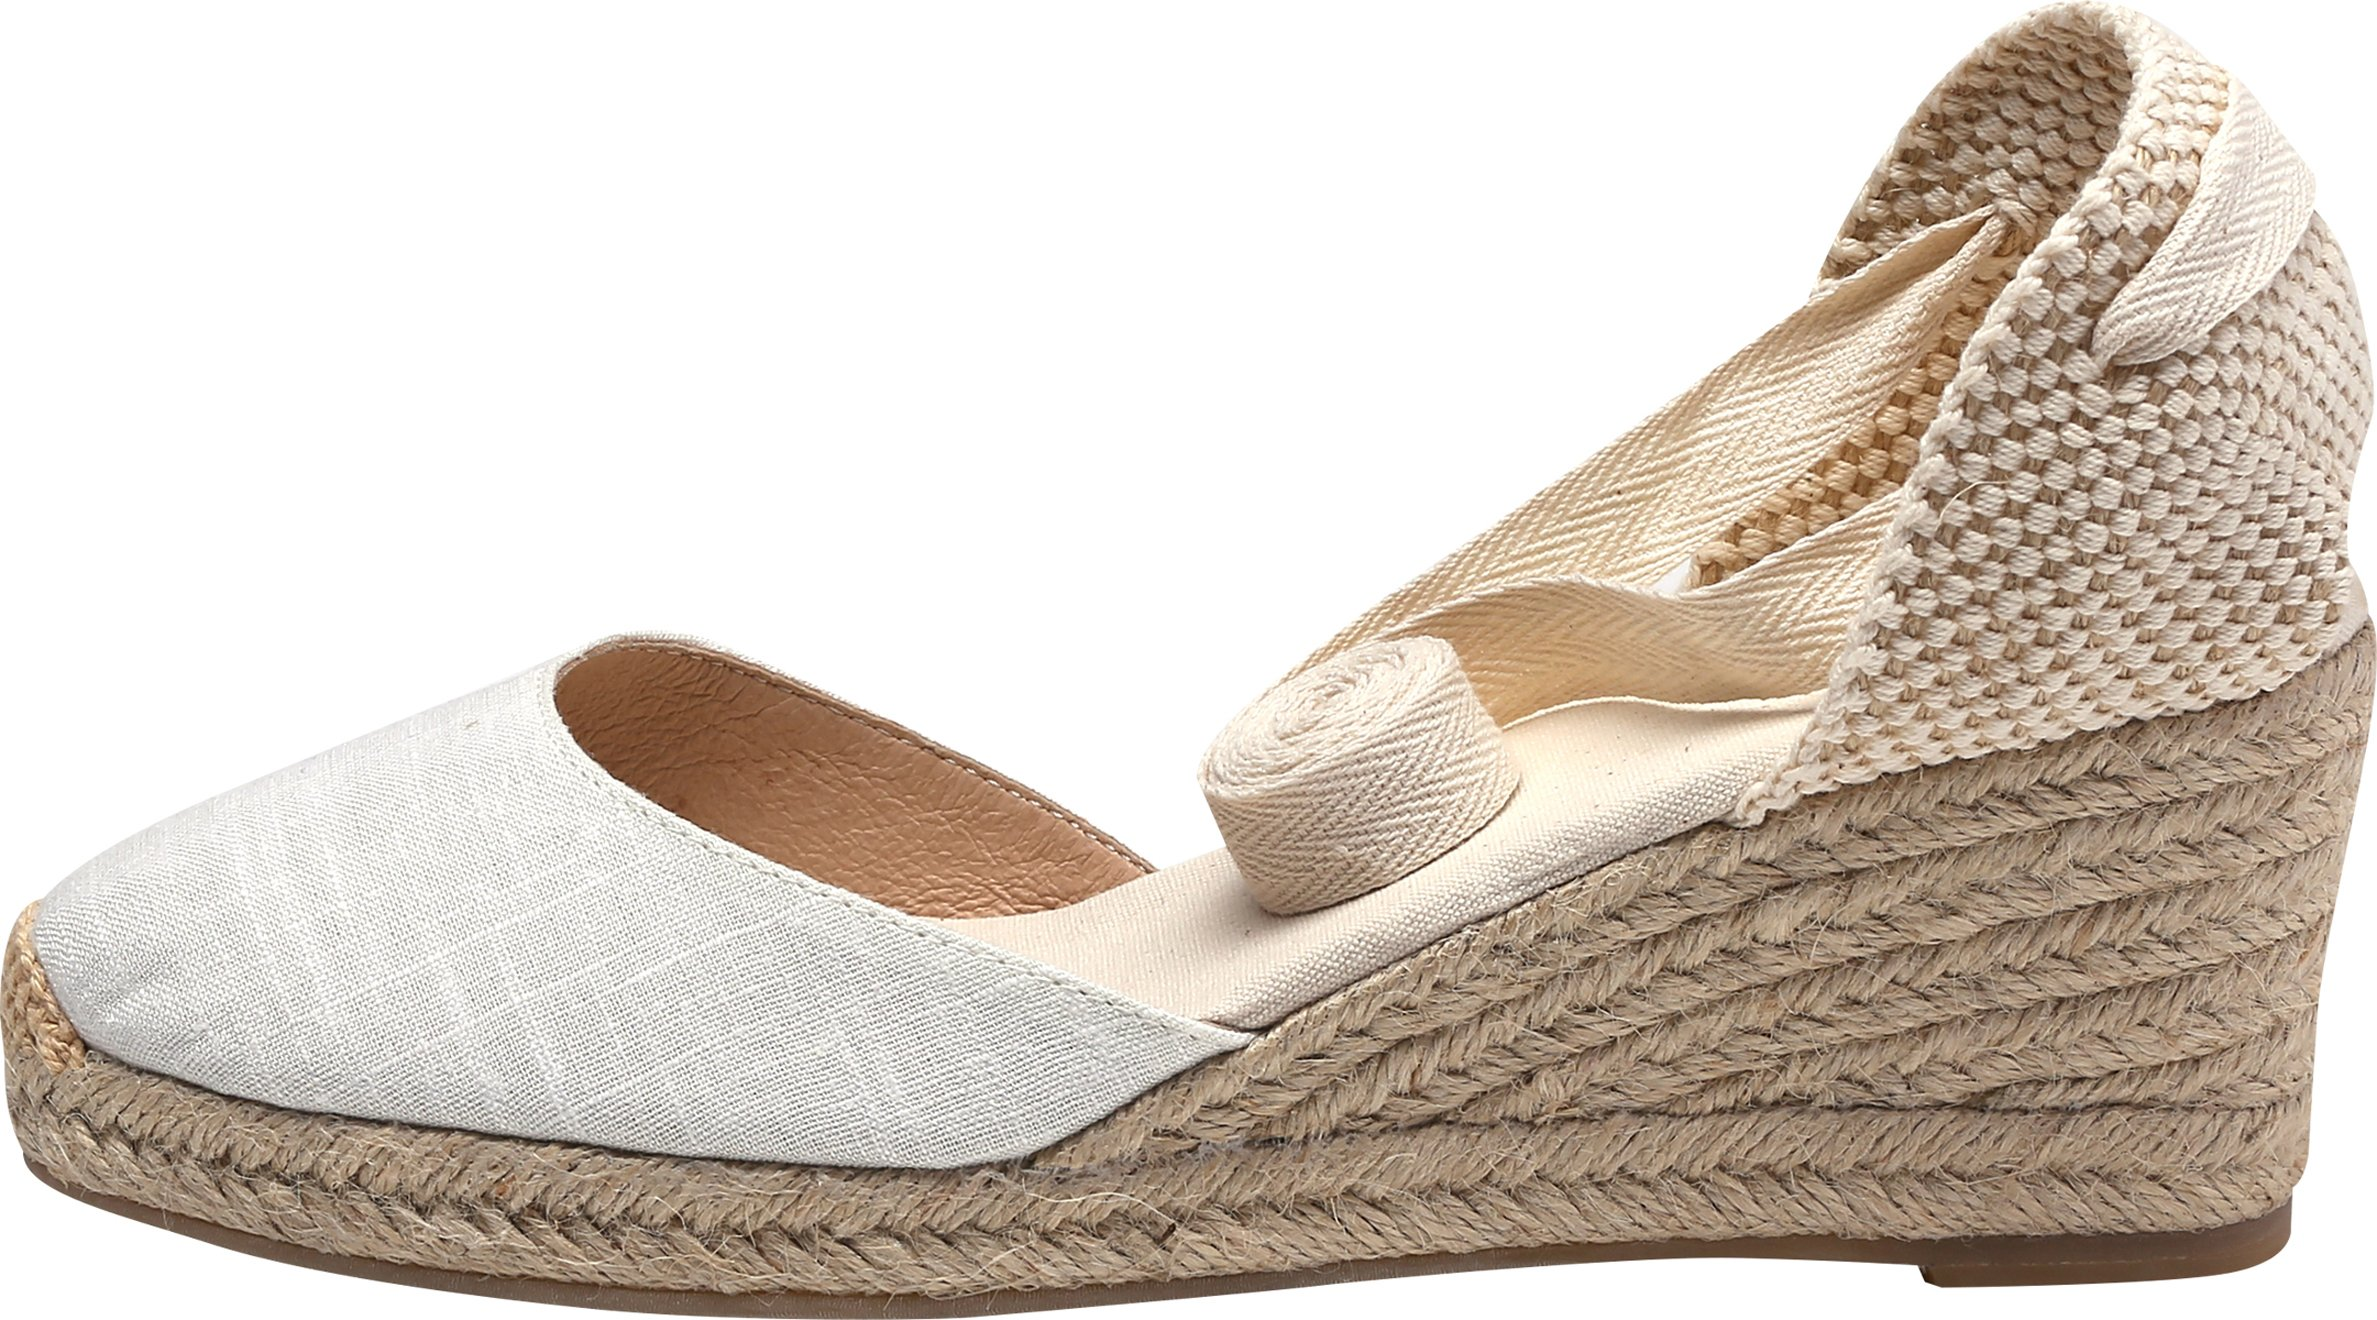 U-lite Women's Summer Leather Innersole Wedges Shoes, Ankle-Wrap Pompom Sandals White7 by U-lite (Image #3)